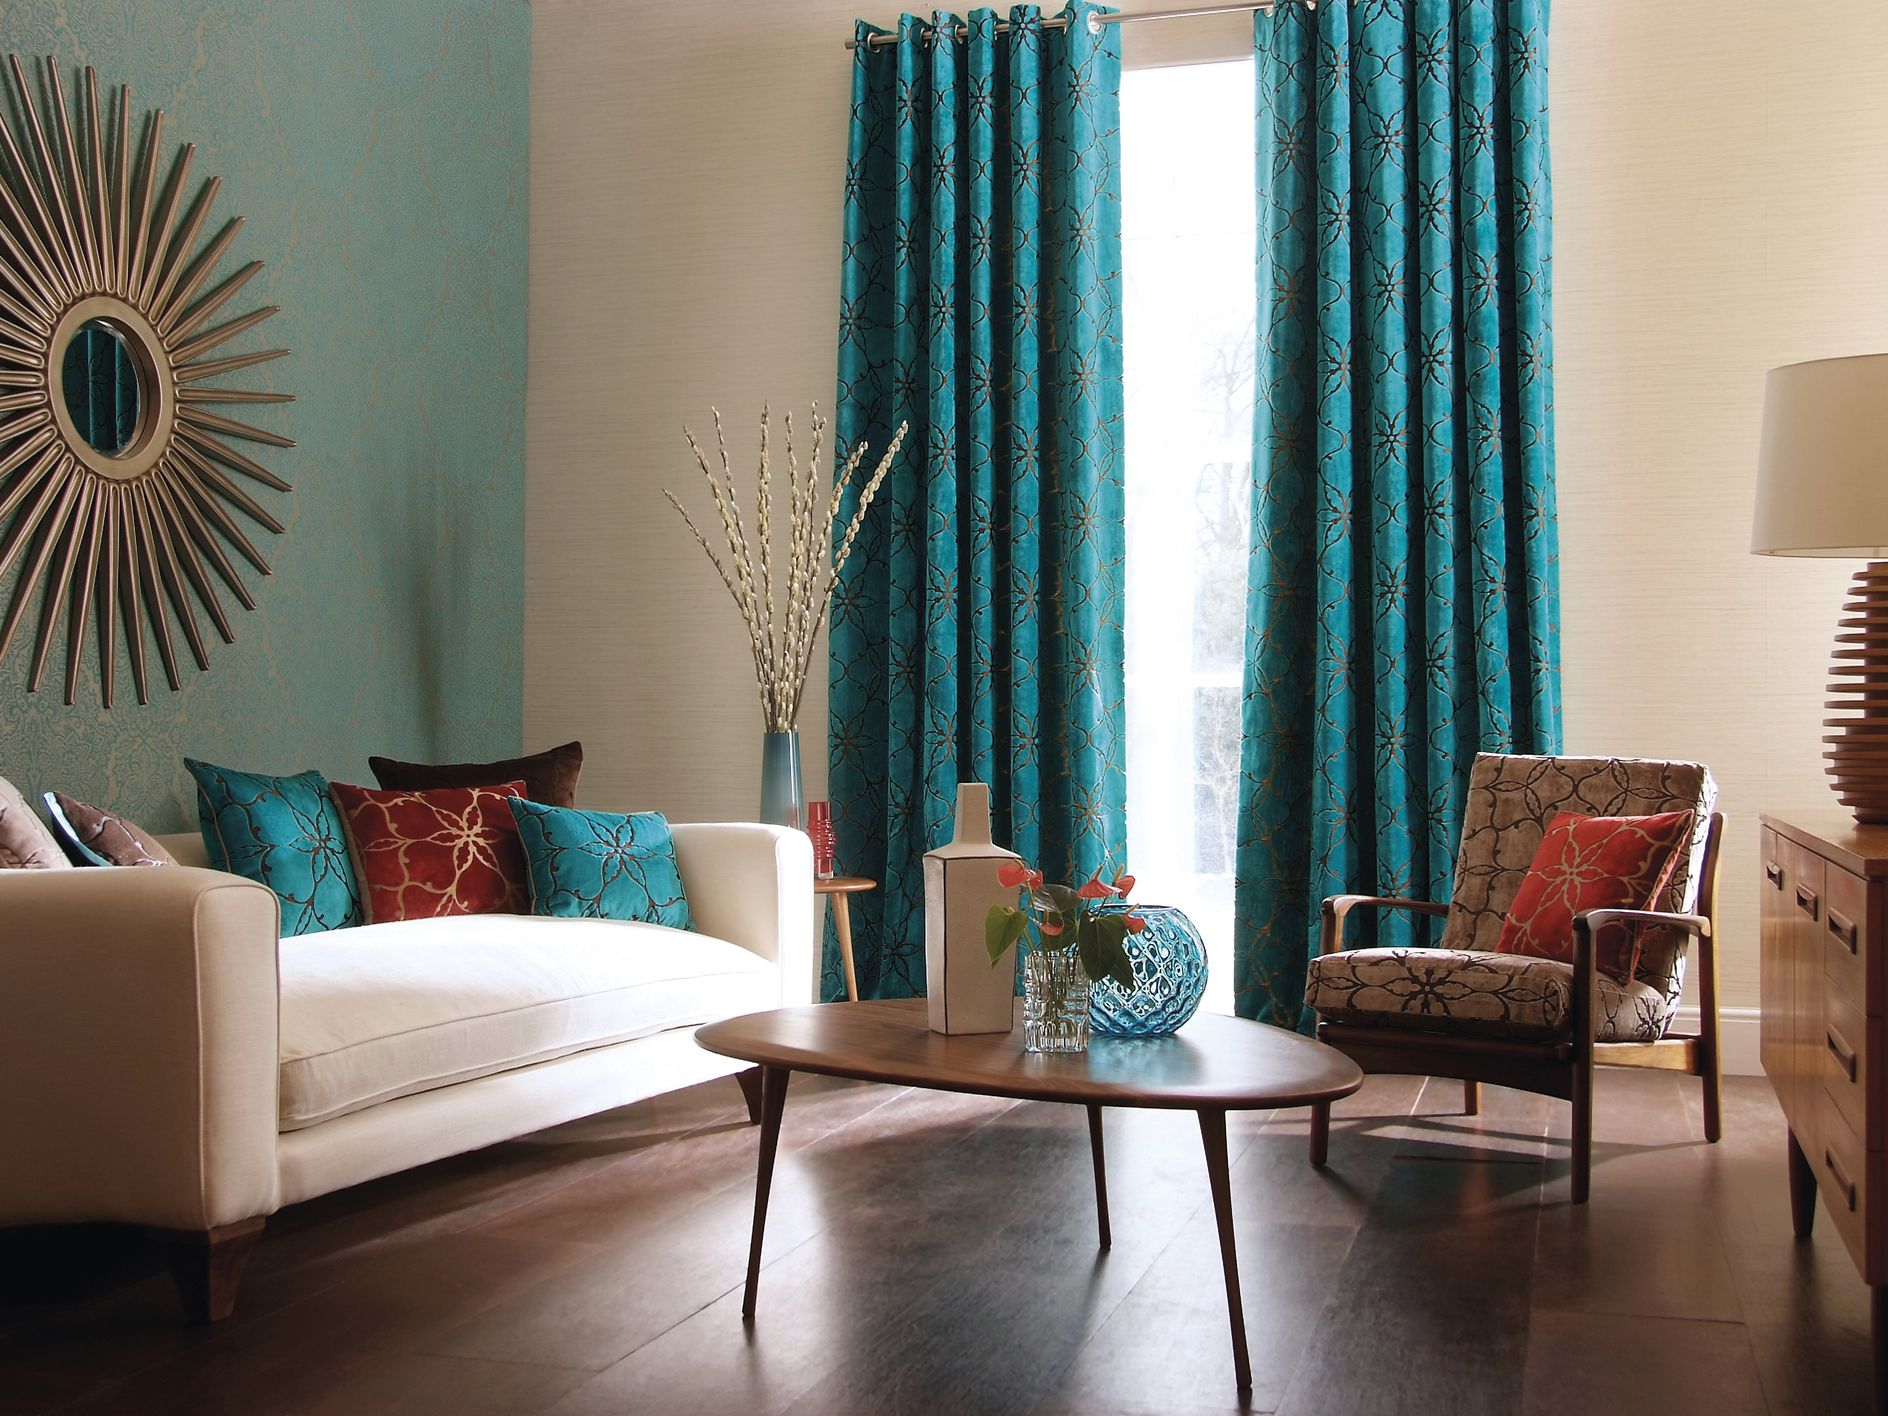 How To Choose Curtains For Your Home